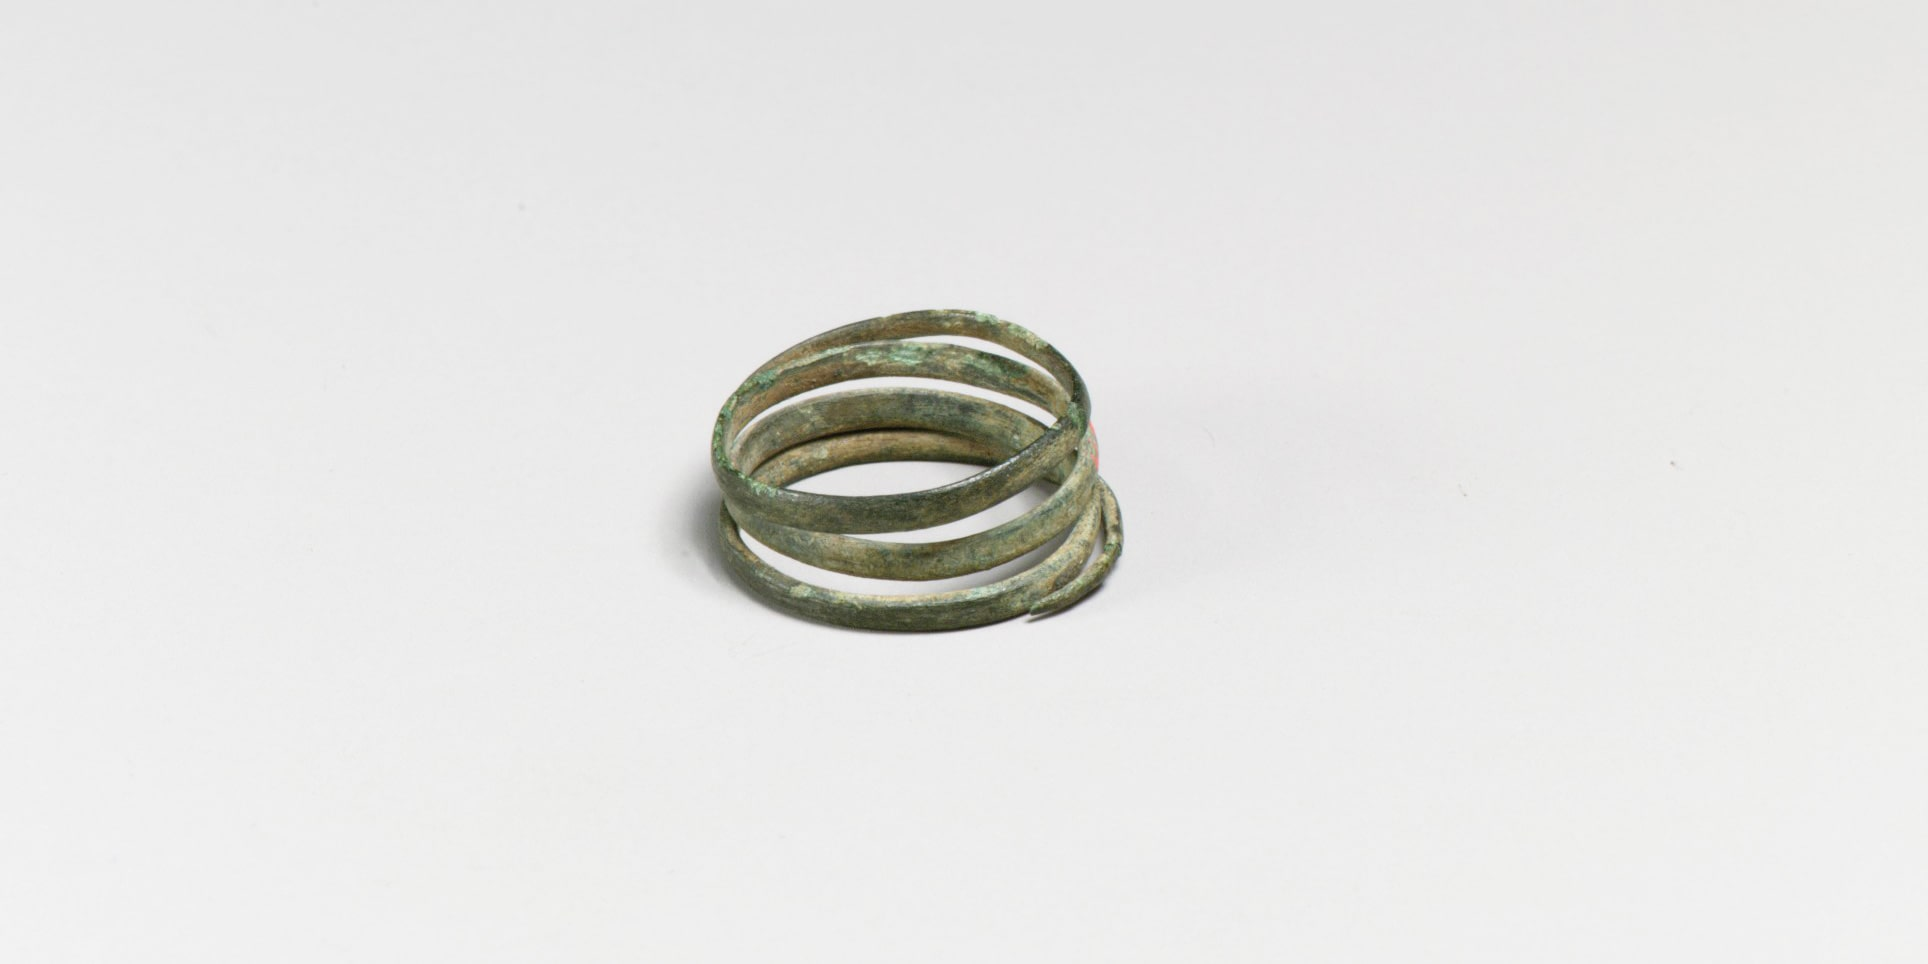 A photograph of a small spiral of flattened bronze wire against a featureless gray background. The spiral comprises four loops and its surface is dull and oxidized turquoise in places.